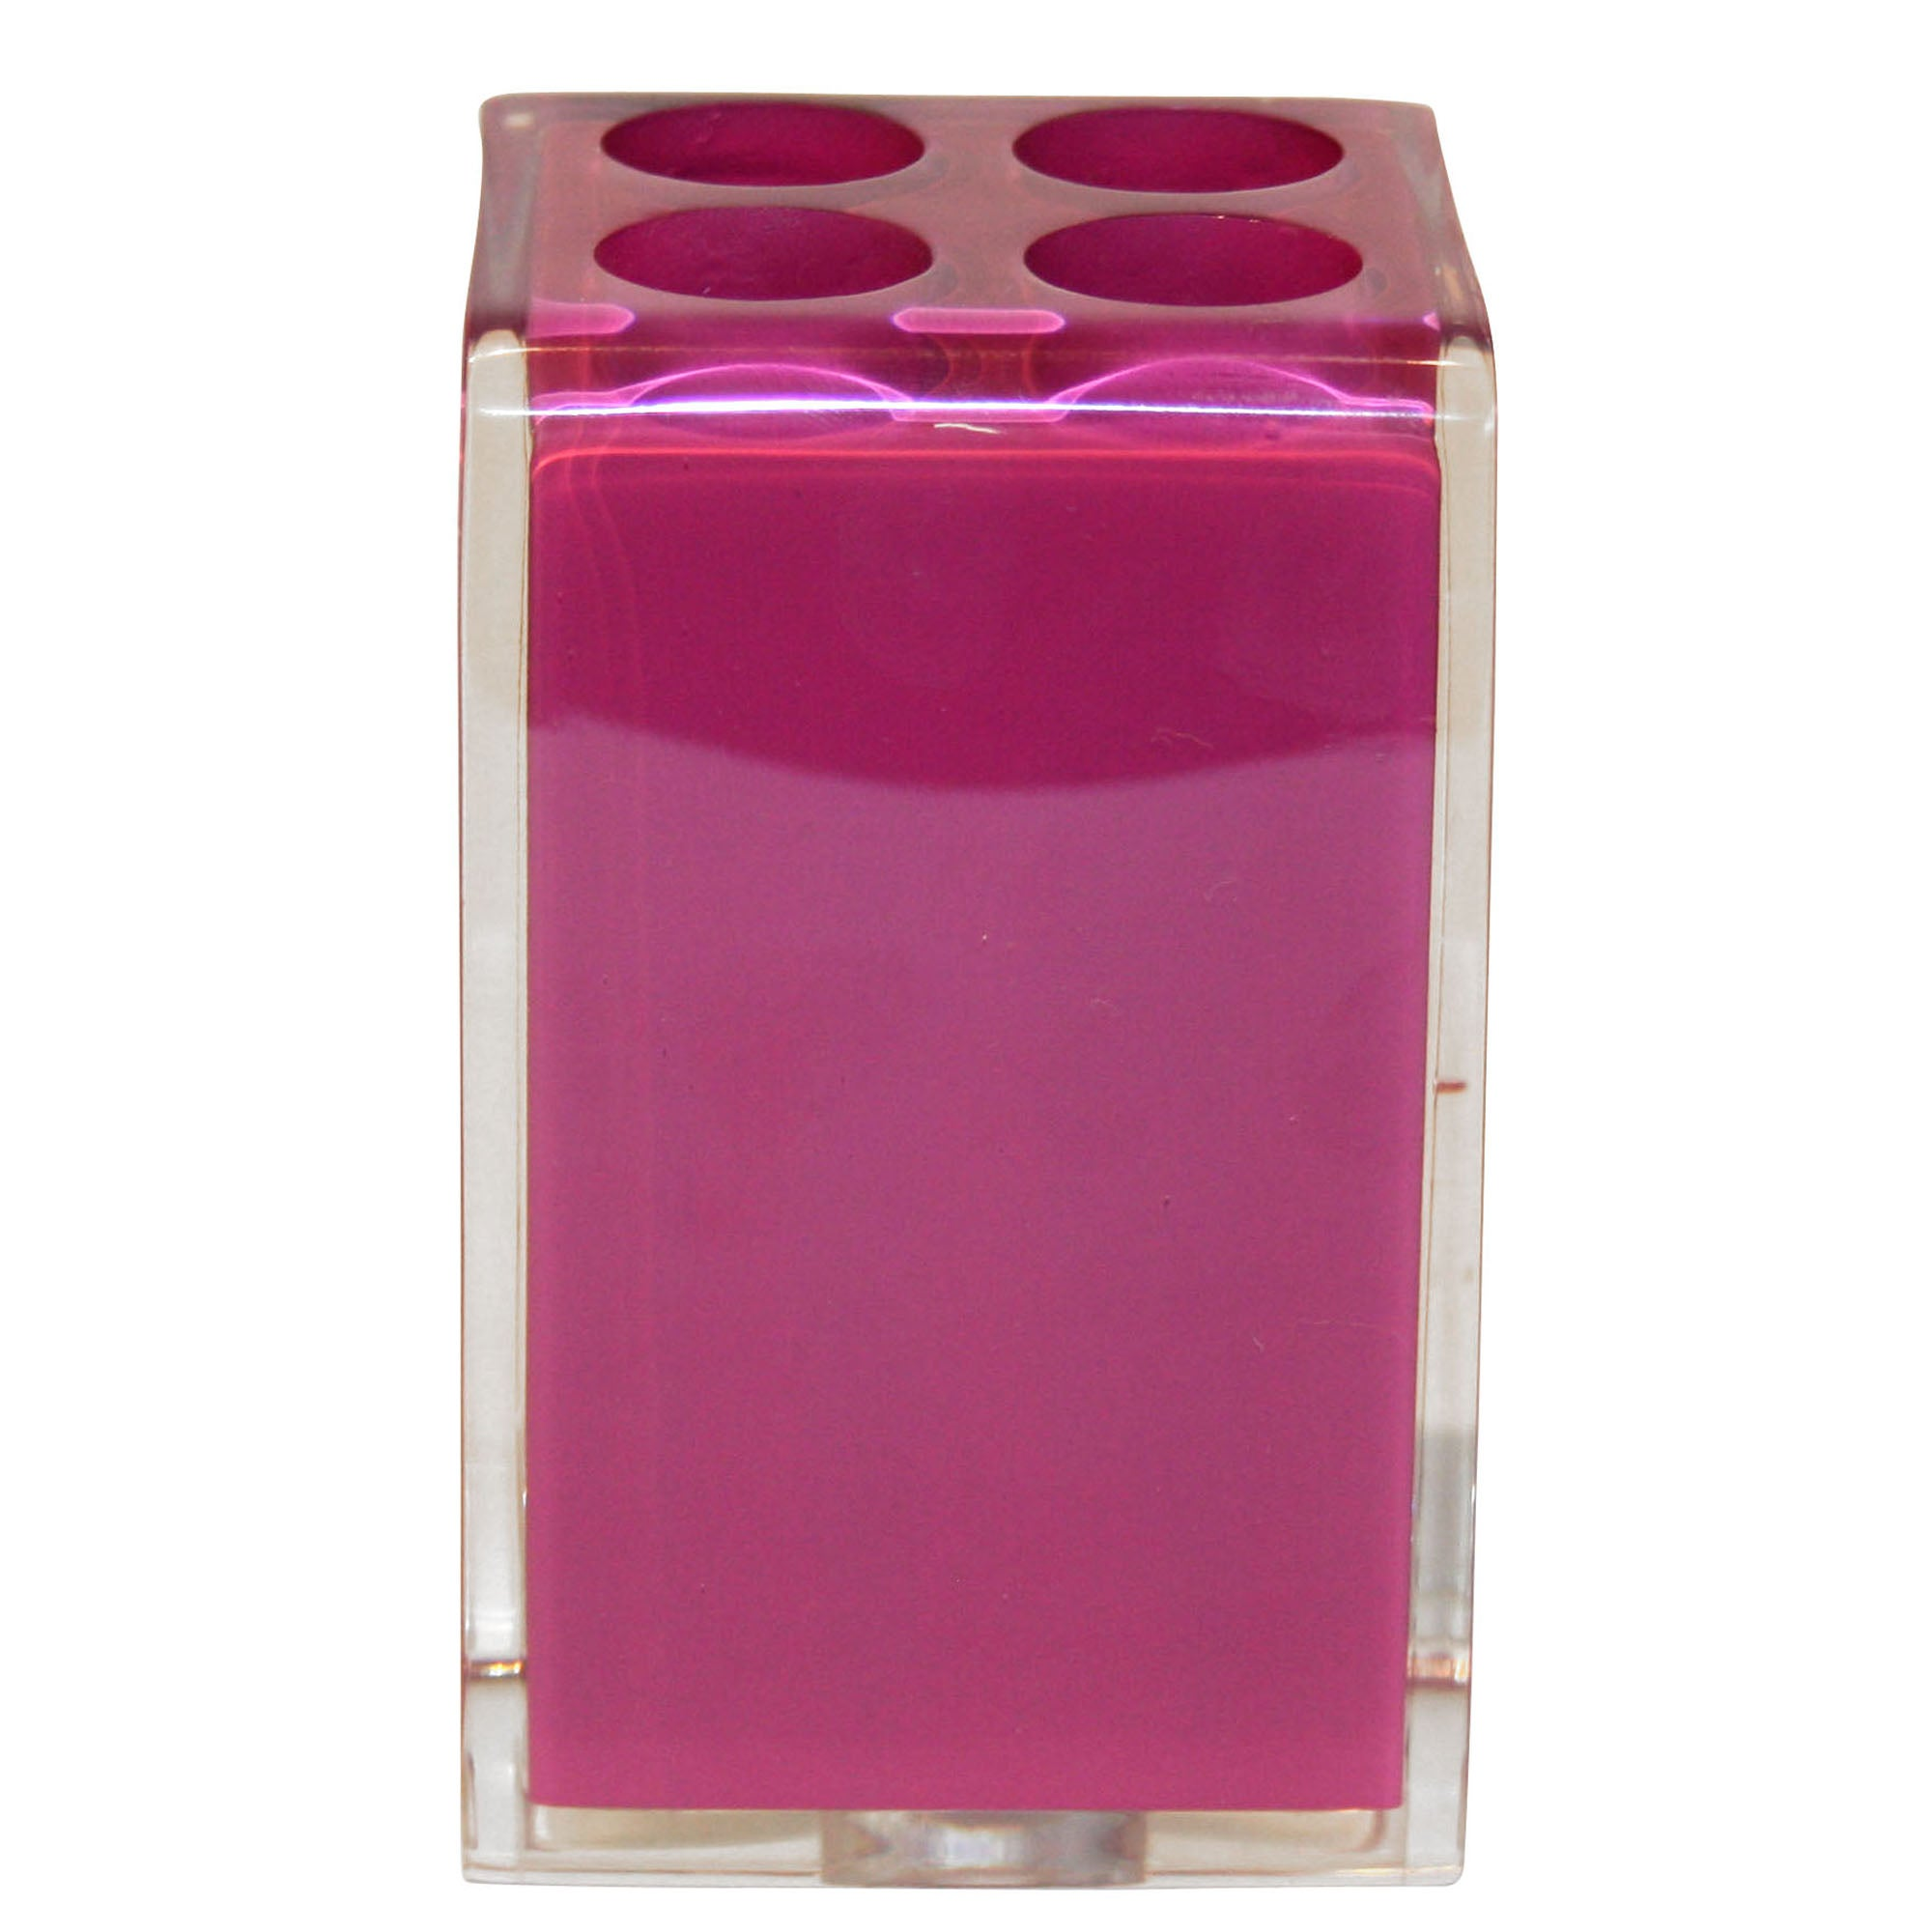 Raspberry Brights Collection Acrylic Toothbrush Holder